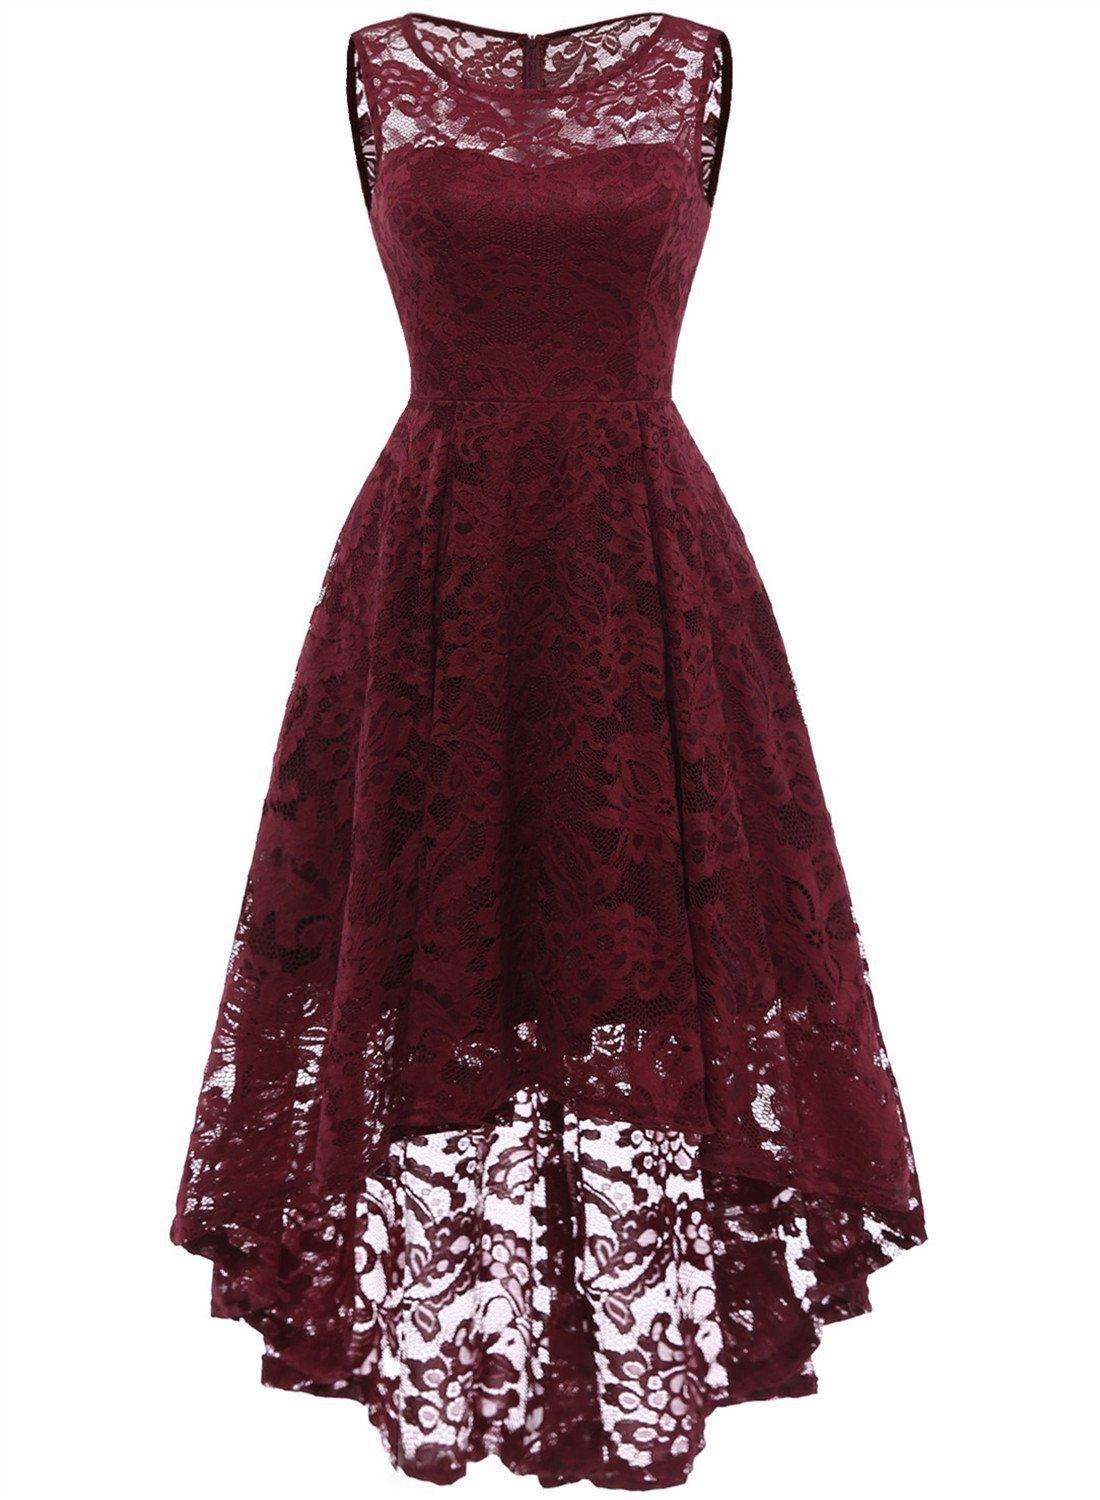 4cce51de73 LaceShe Women s Lace Sleeveless Hi-Lo Cocktail Formal Swing Dress in ...